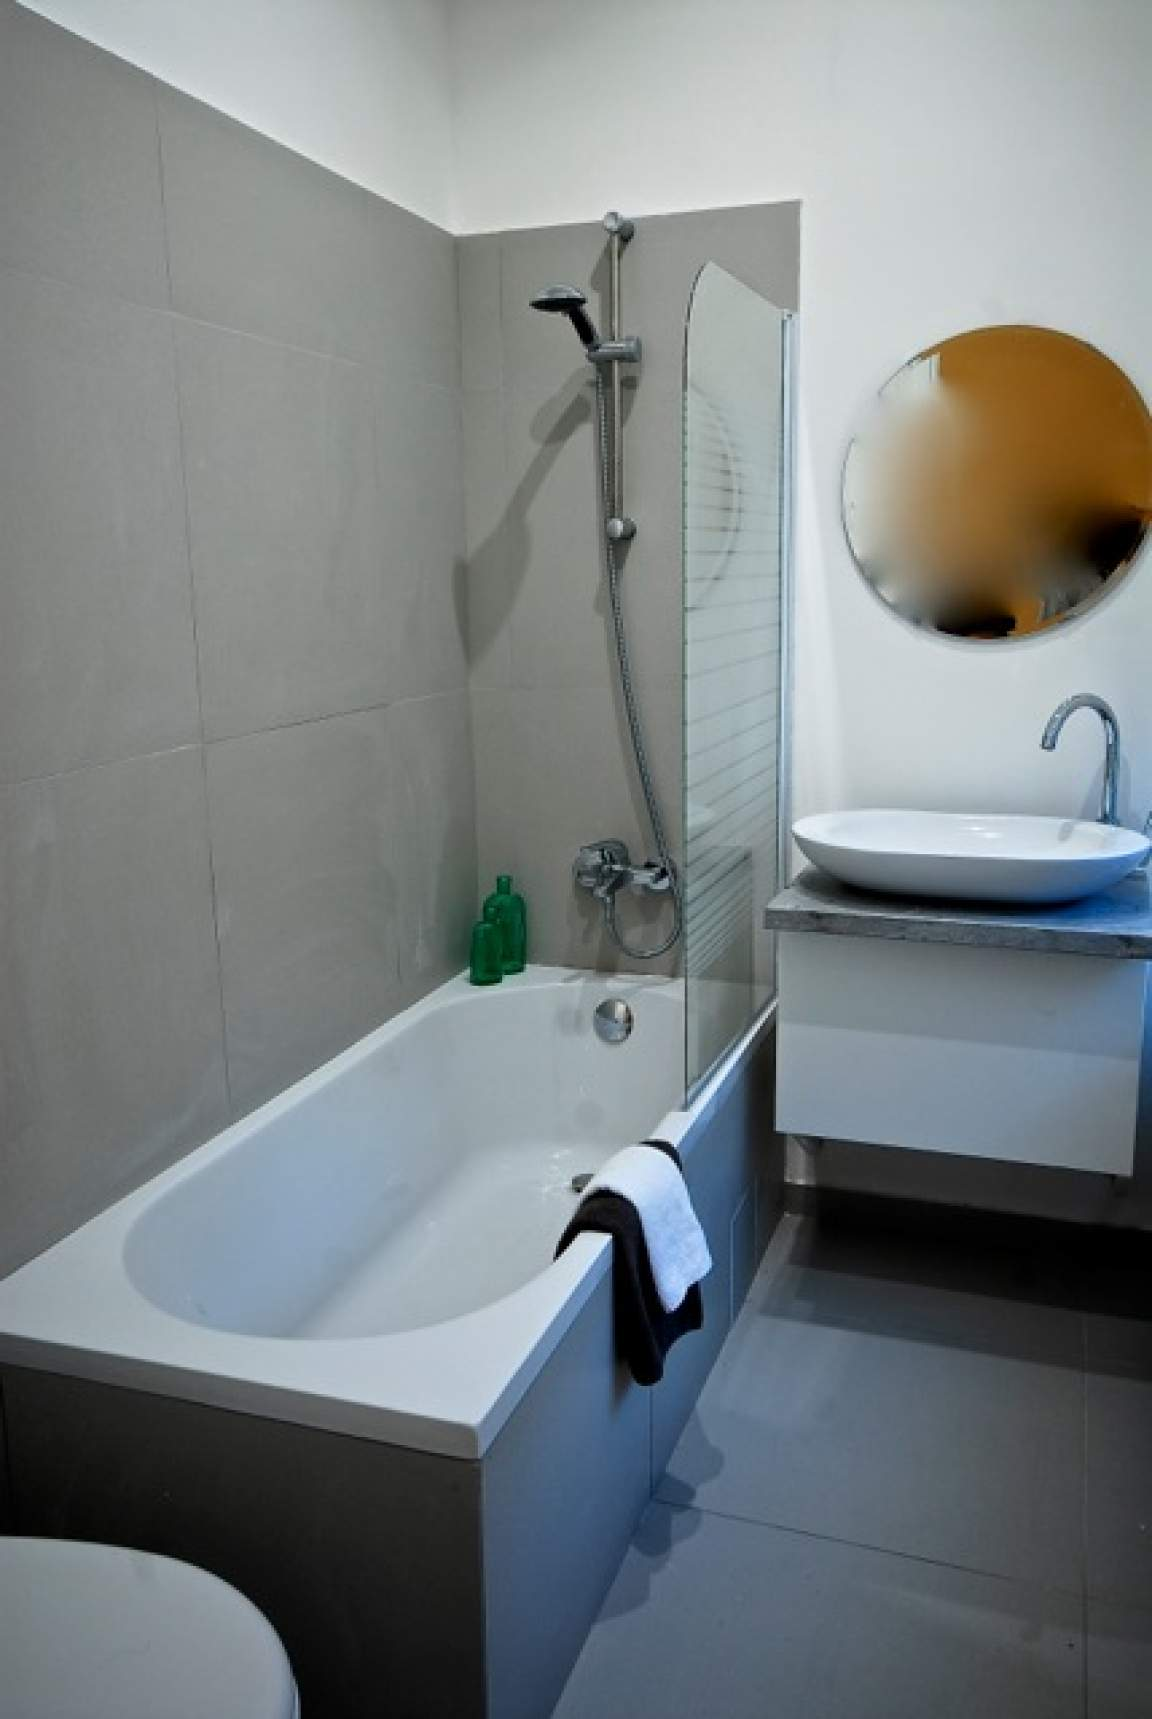 Bathroom Room 3